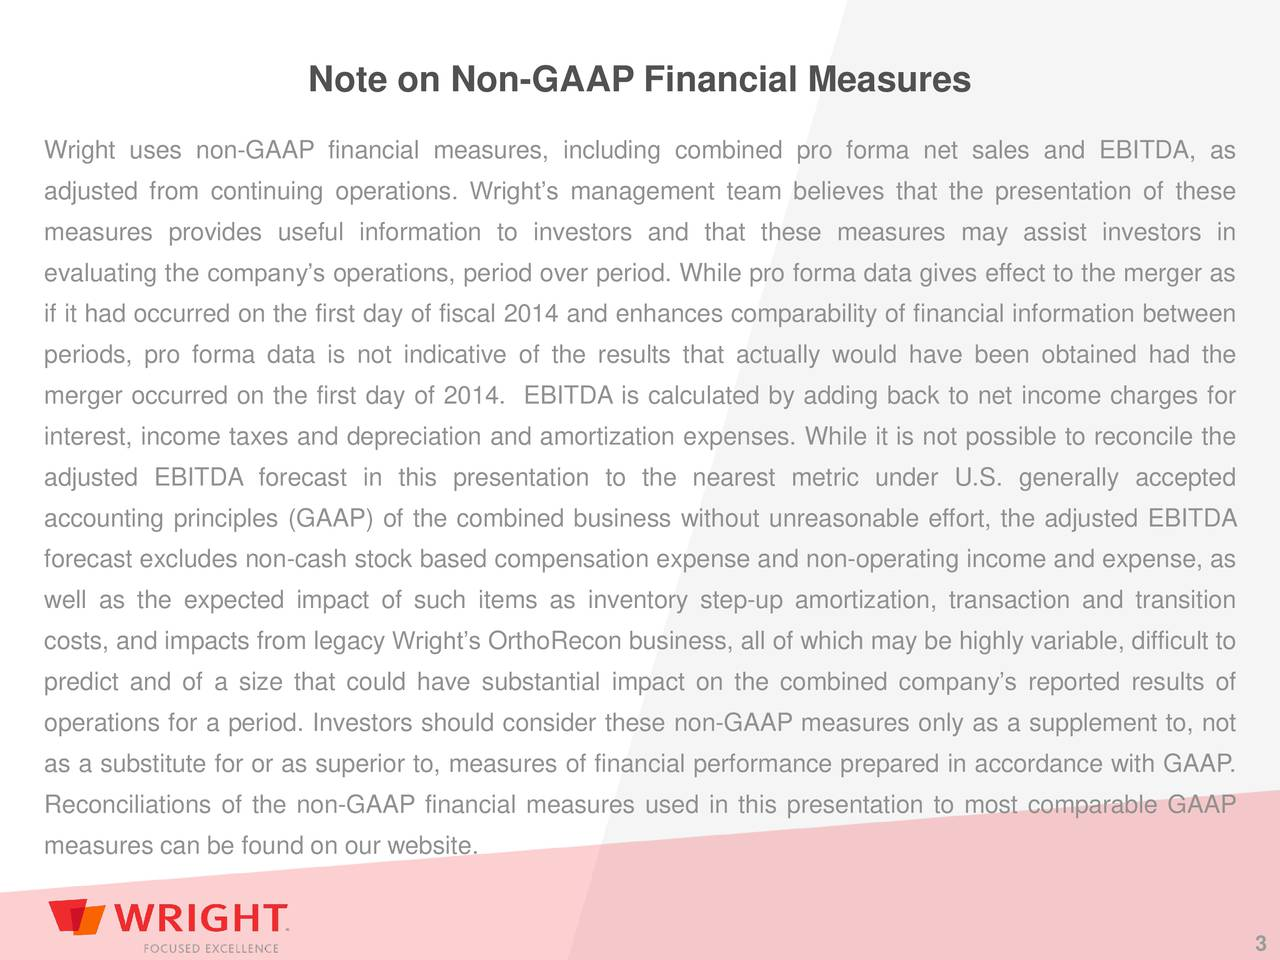 Wright uses non-GAAP financial measures, including combined pro forma net sales and EBITDA, as adjusted from continuing operations. Wrights management team believes that the presentation of these measures provides useful information to investors and that these measures may assist investors in evaluating the companys operations, period over period. While pro forma data gives effect to the merger as if it had occurred on the first day of fiscal 2014 and enhances comparability of financial information between periods, pro forma data is not indicative of the results that actually would have been obtained had the merger occurred on the first day of 2014. EBITDA is calculated by adding back to net income charges for interest, income taxes and depreciation and amortization expenses. While it is not possible to reconcile the adjusted EBITDA forecast in this presentation to the nearest metric under U.S. generally accepted accounting principles (GAAP) of the combined business without unreasonable effort, the adjusted EBITDA forecast excludes non-cash stock based compensation expense and non-operating income and expense, as well as the expected impact of such items as inventory step-up amortization, transaction and transition costs, and impacts from legacy Wrights OrthoRecon business, all of which may be highly variable, difficult to predict and of a size that could have substantial impact on the combined companys reported results of operations for a period. Investors should consider these non-GAAP measures only as a supplement to, not as a substitute for or as superior to, measures of financial performance prepared in accordance with GAAP. Reconciliations of the non-GAAP financial measures used in this presentation to most comparable GAAP measures can be found on our website.